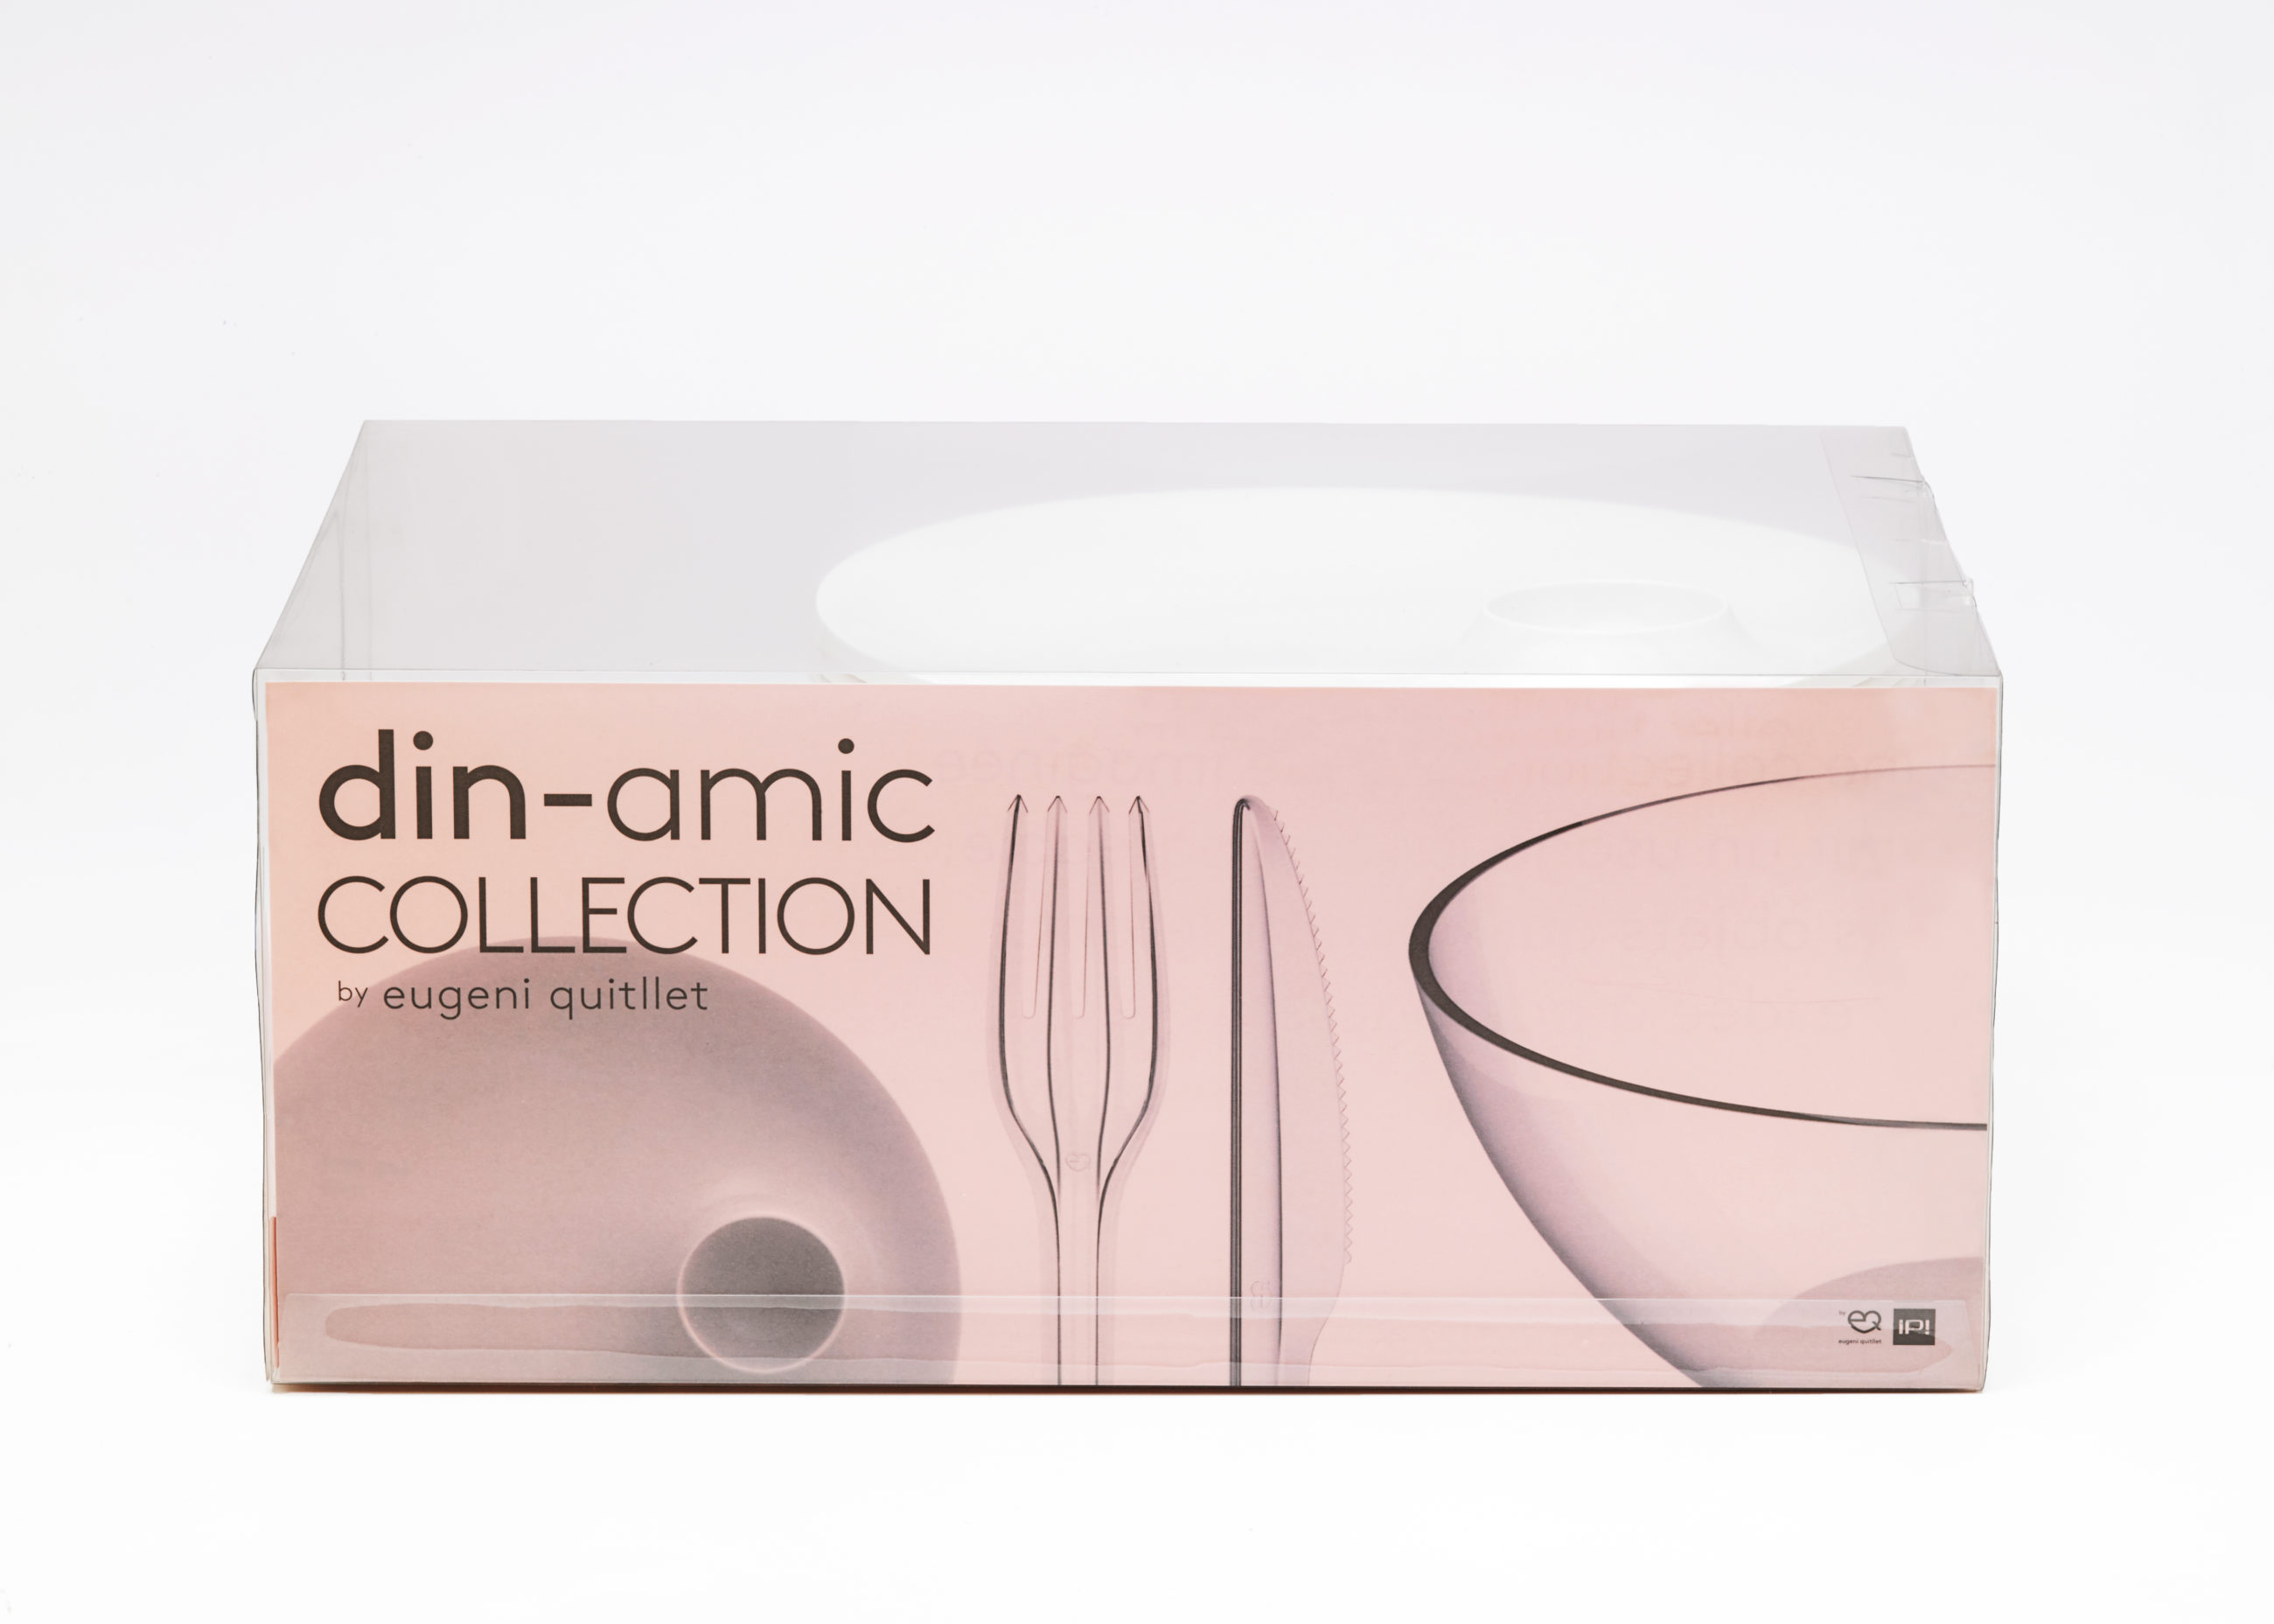 DIN-AMIC COLLECTION POMPIDOU EDITION